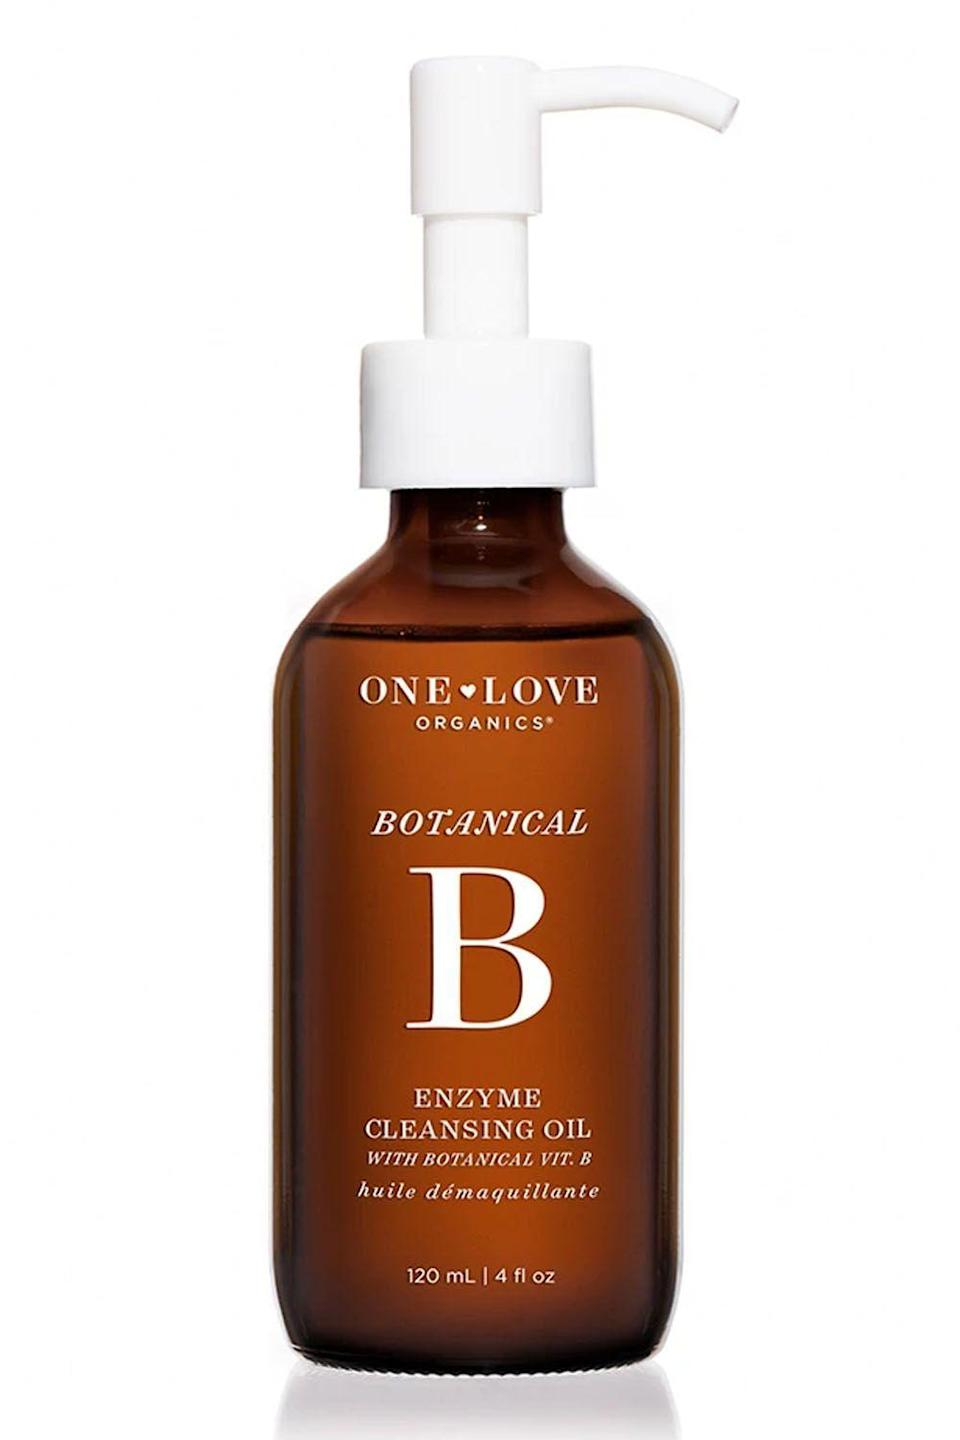 """<p><strong>One Love Organics</strong></p><p>dermstore.com</p><p><strong>$42.00</strong></p><p><a href=""""https://go.redirectingat.com?id=74968X1596630&url=https%3A%2F%2Fwww.dermstore.com%2Fproduct_Vitamin%2BB%2BEnzyme%2BCleansing%2BOil%2BMakeup%2BRemover_53450.htm&sref=https%3A%2F%2Fwww.cosmopolitan.com%2Fstyle-beauty%2Fbeauty%2Fg19620718%2Fbest-makeup-remover%2F"""" rel=""""nofollow noopener"""" target=""""_blank"""" data-ylk=""""slk:Shop Now"""" class=""""link rapid-noclick-resp"""">Shop Now</a></p><p>This <a href=""""https://www.cosmopolitan.com/style-beauty/beauty/g20126849/organic-skin-care-brands-products/"""" rel=""""nofollow noopener"""" target=""""_blank"""" data-ylk=""""slk:organic"""" class=""""link rapid-noclick-resp"""">organic</a> cleansing oil feels like an absolute dream on your skin—the <strong>combo of vitamin E, sunflower seed oil, beeswax, and papaya seed oil</strong> means that your makeup comes off gently and it won't leave your skin feeling tight or dry.</p>"""